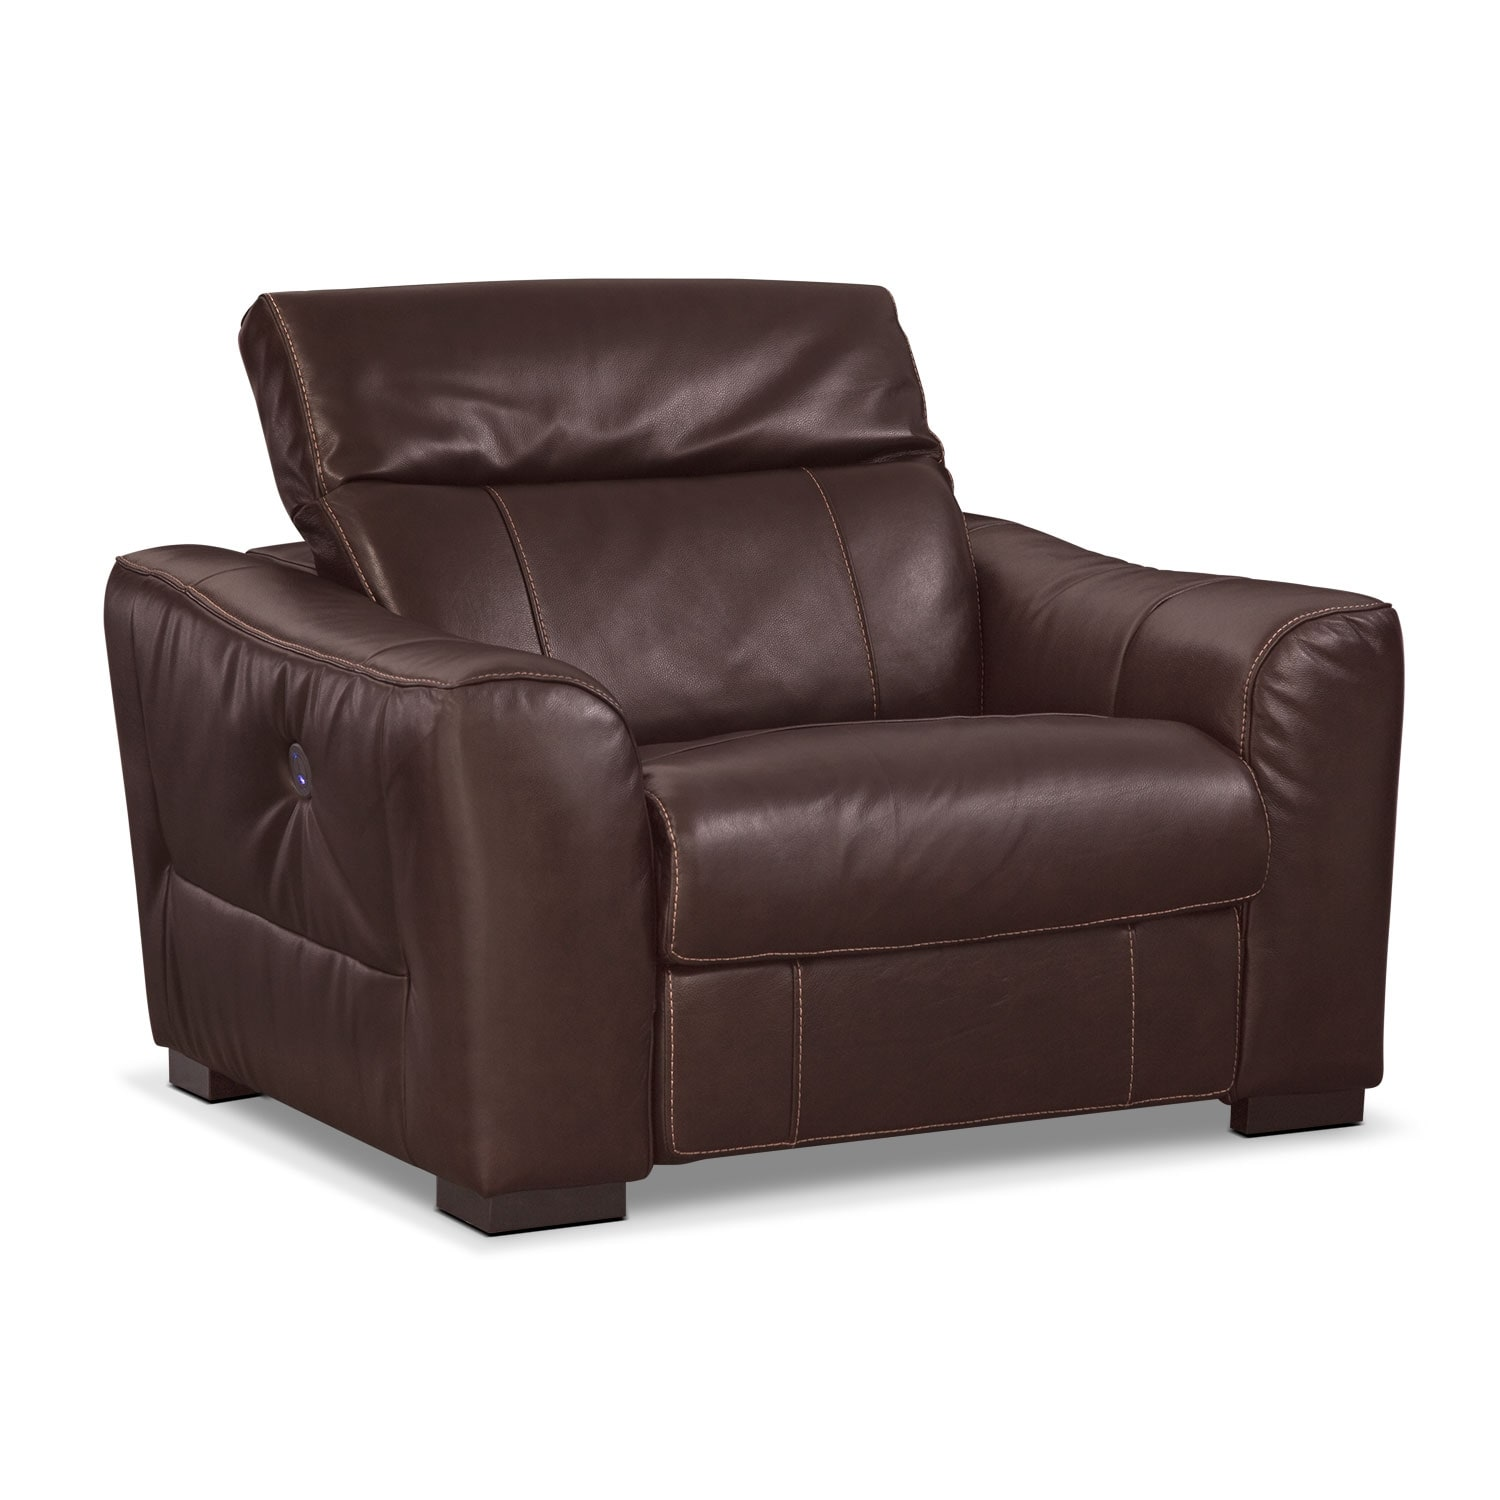 [Palisade Brown Power Recliner]